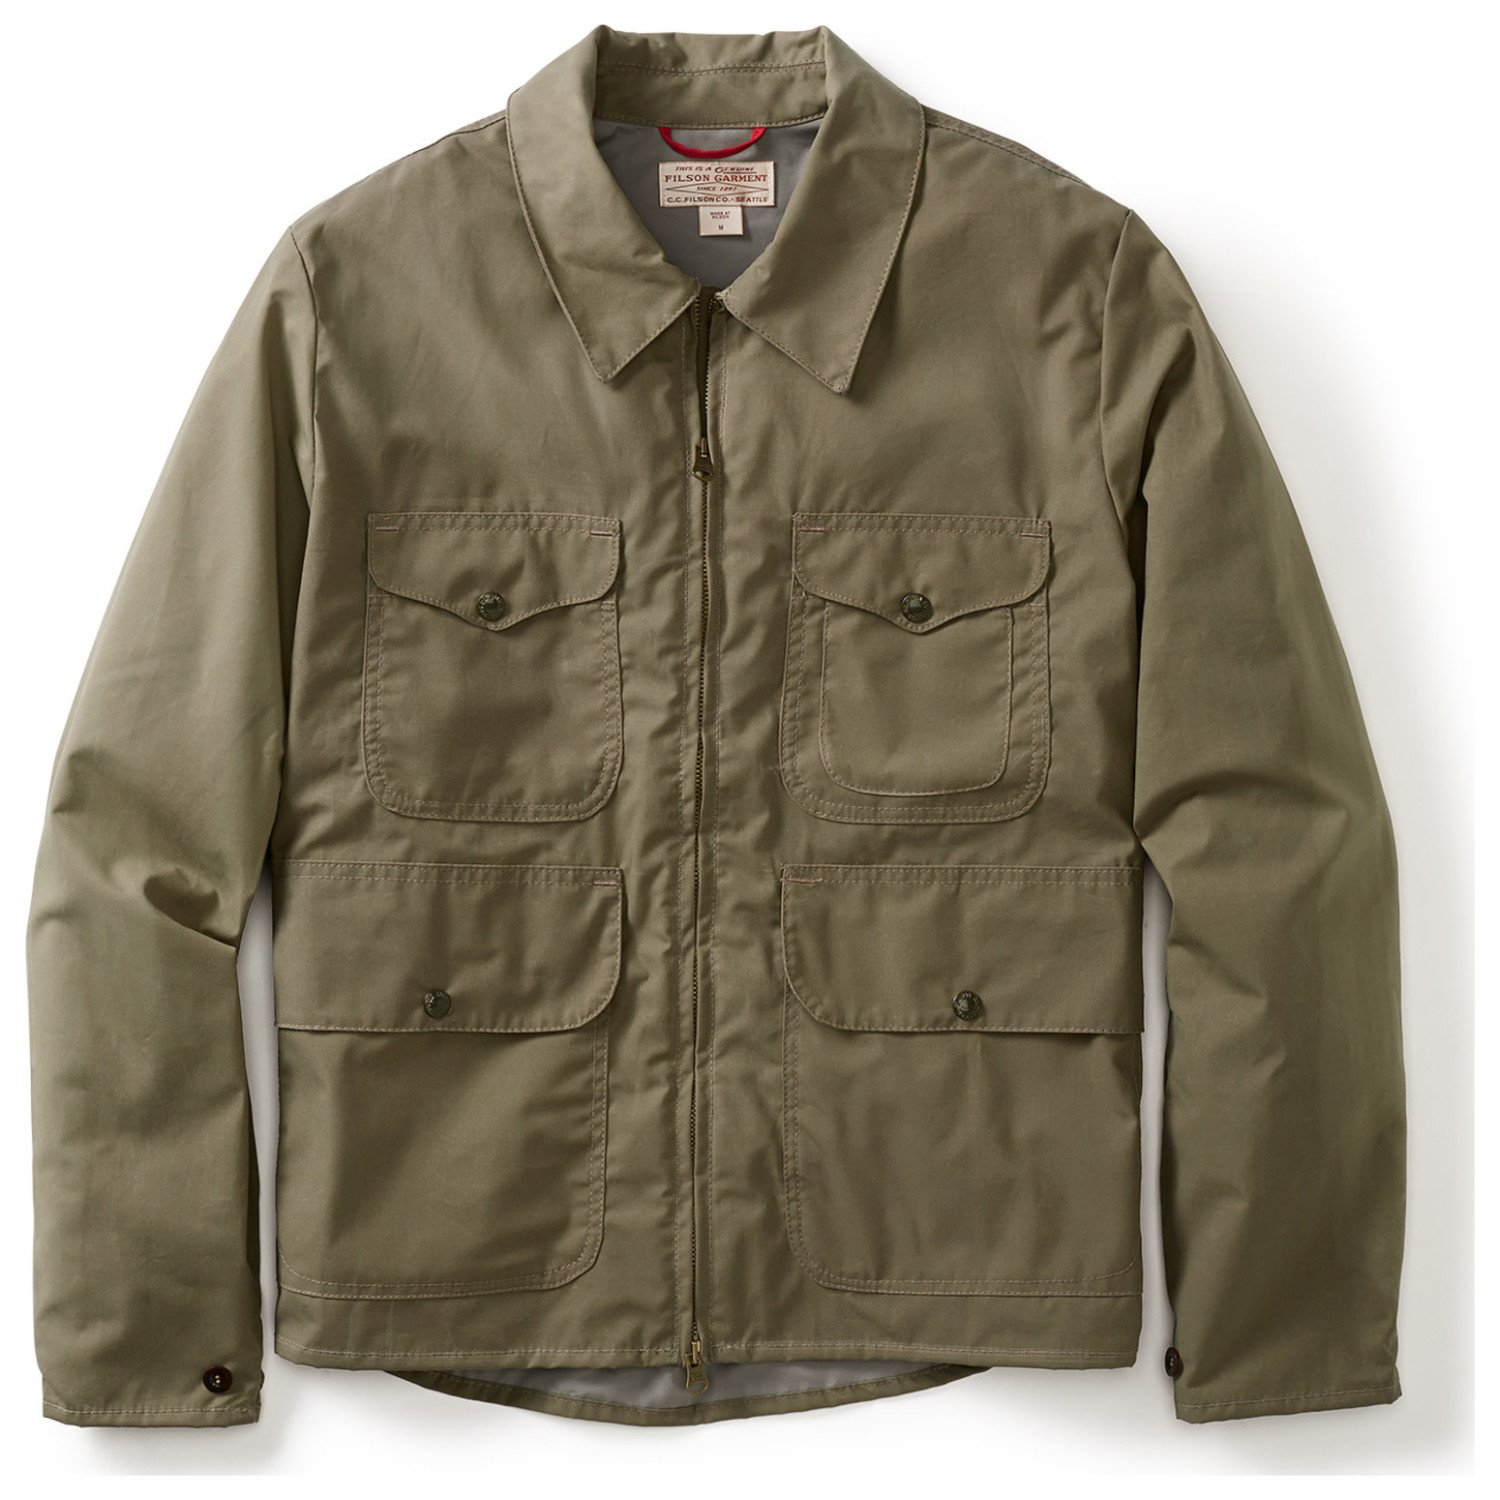 Filson Bell Bomber Jacket - Staywax Cover Cloth (X-Large, Tan)